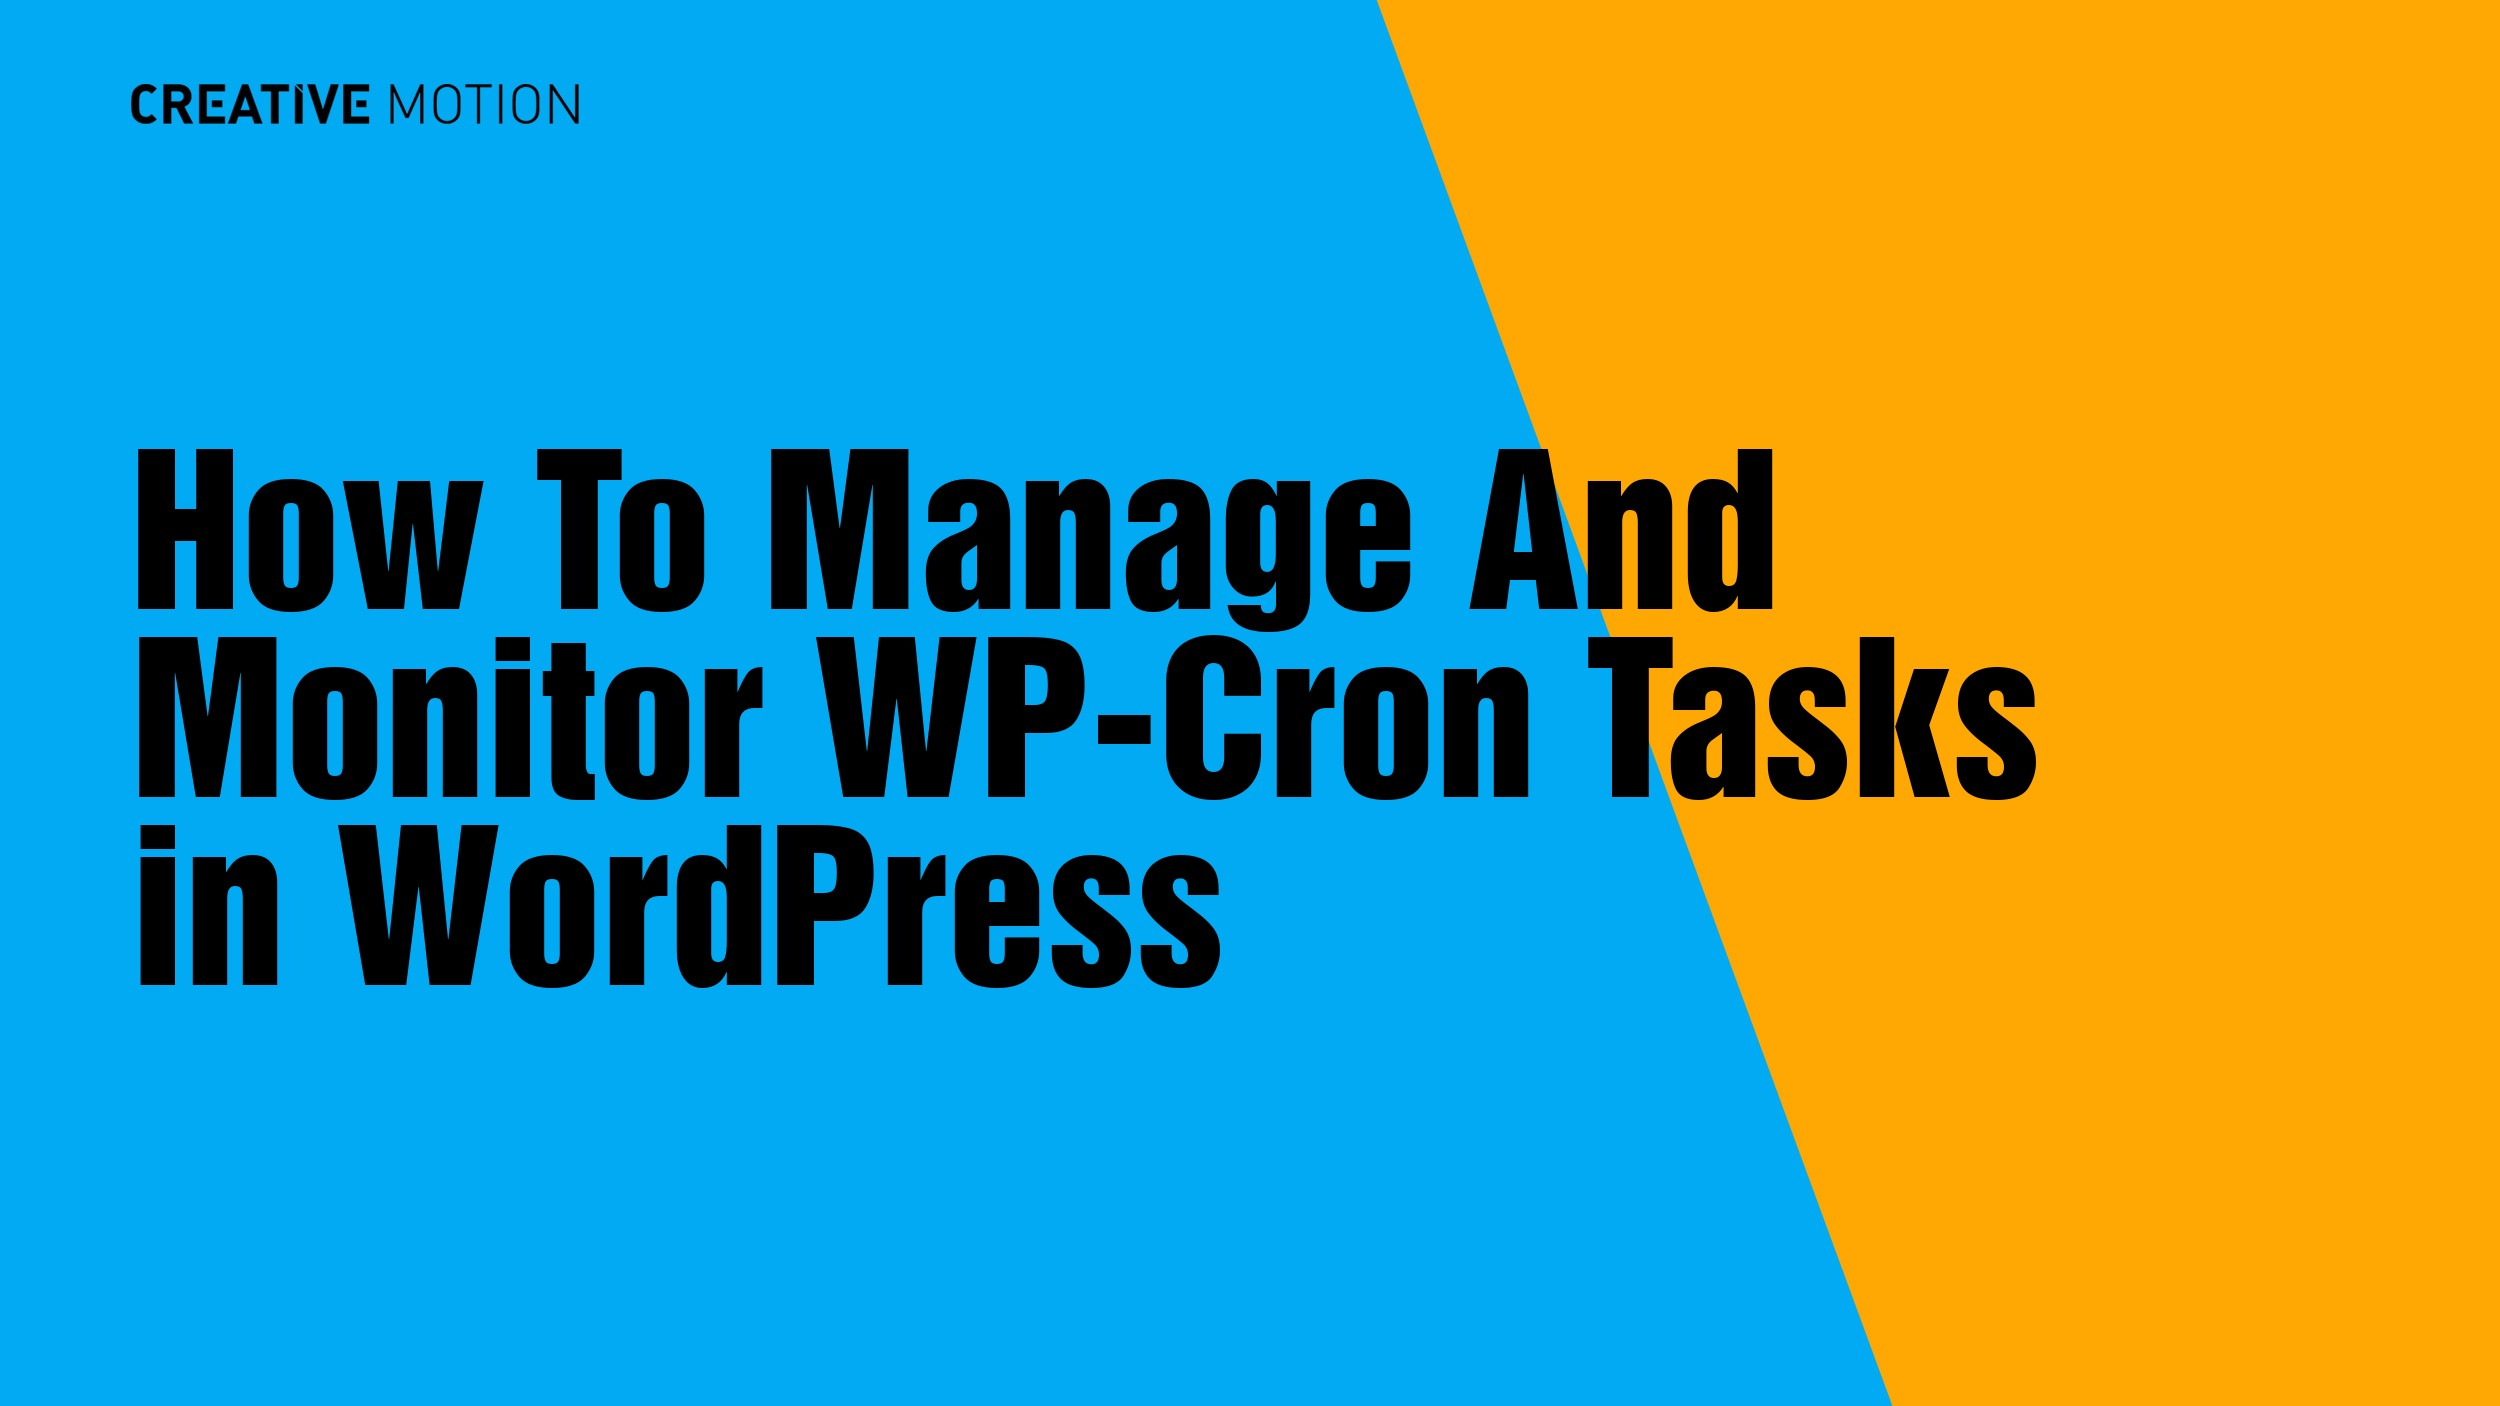 How To Manage And Monitor WP-Cron Tasks in WordPress